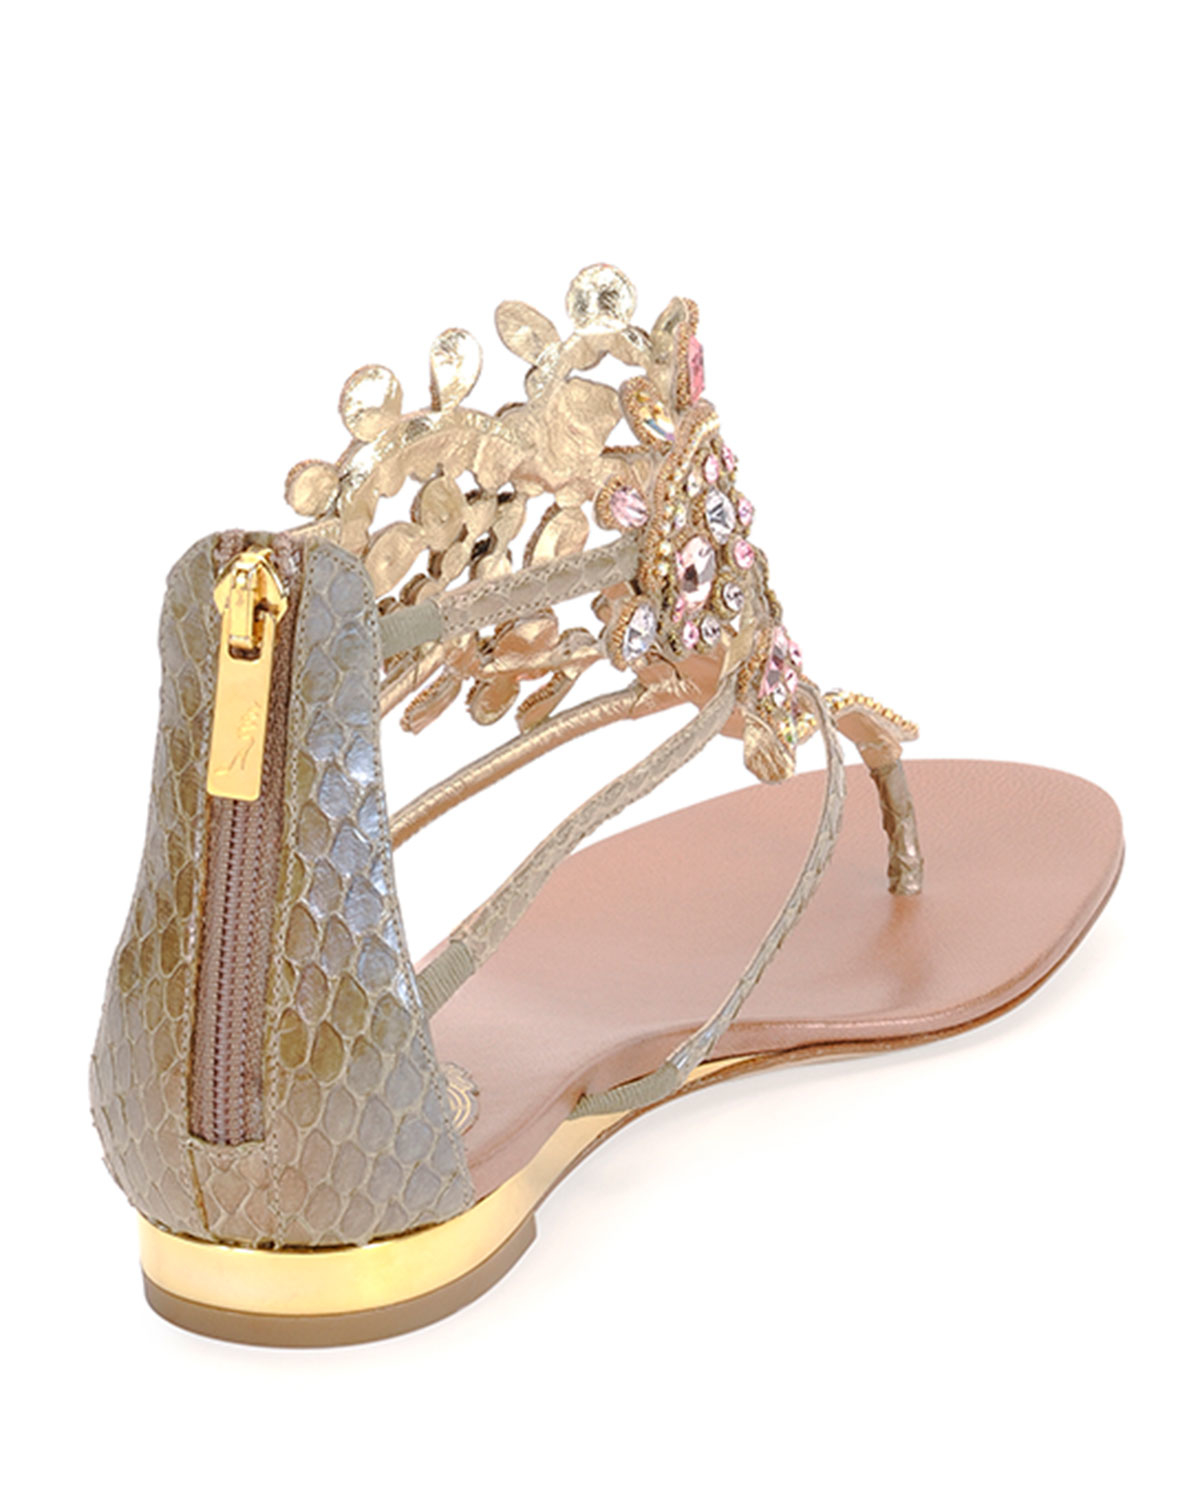 85a0e4f32a1965 Lyst - Rene Caovilla Crystal-Chandelier Leather Thong Sandals in Natural